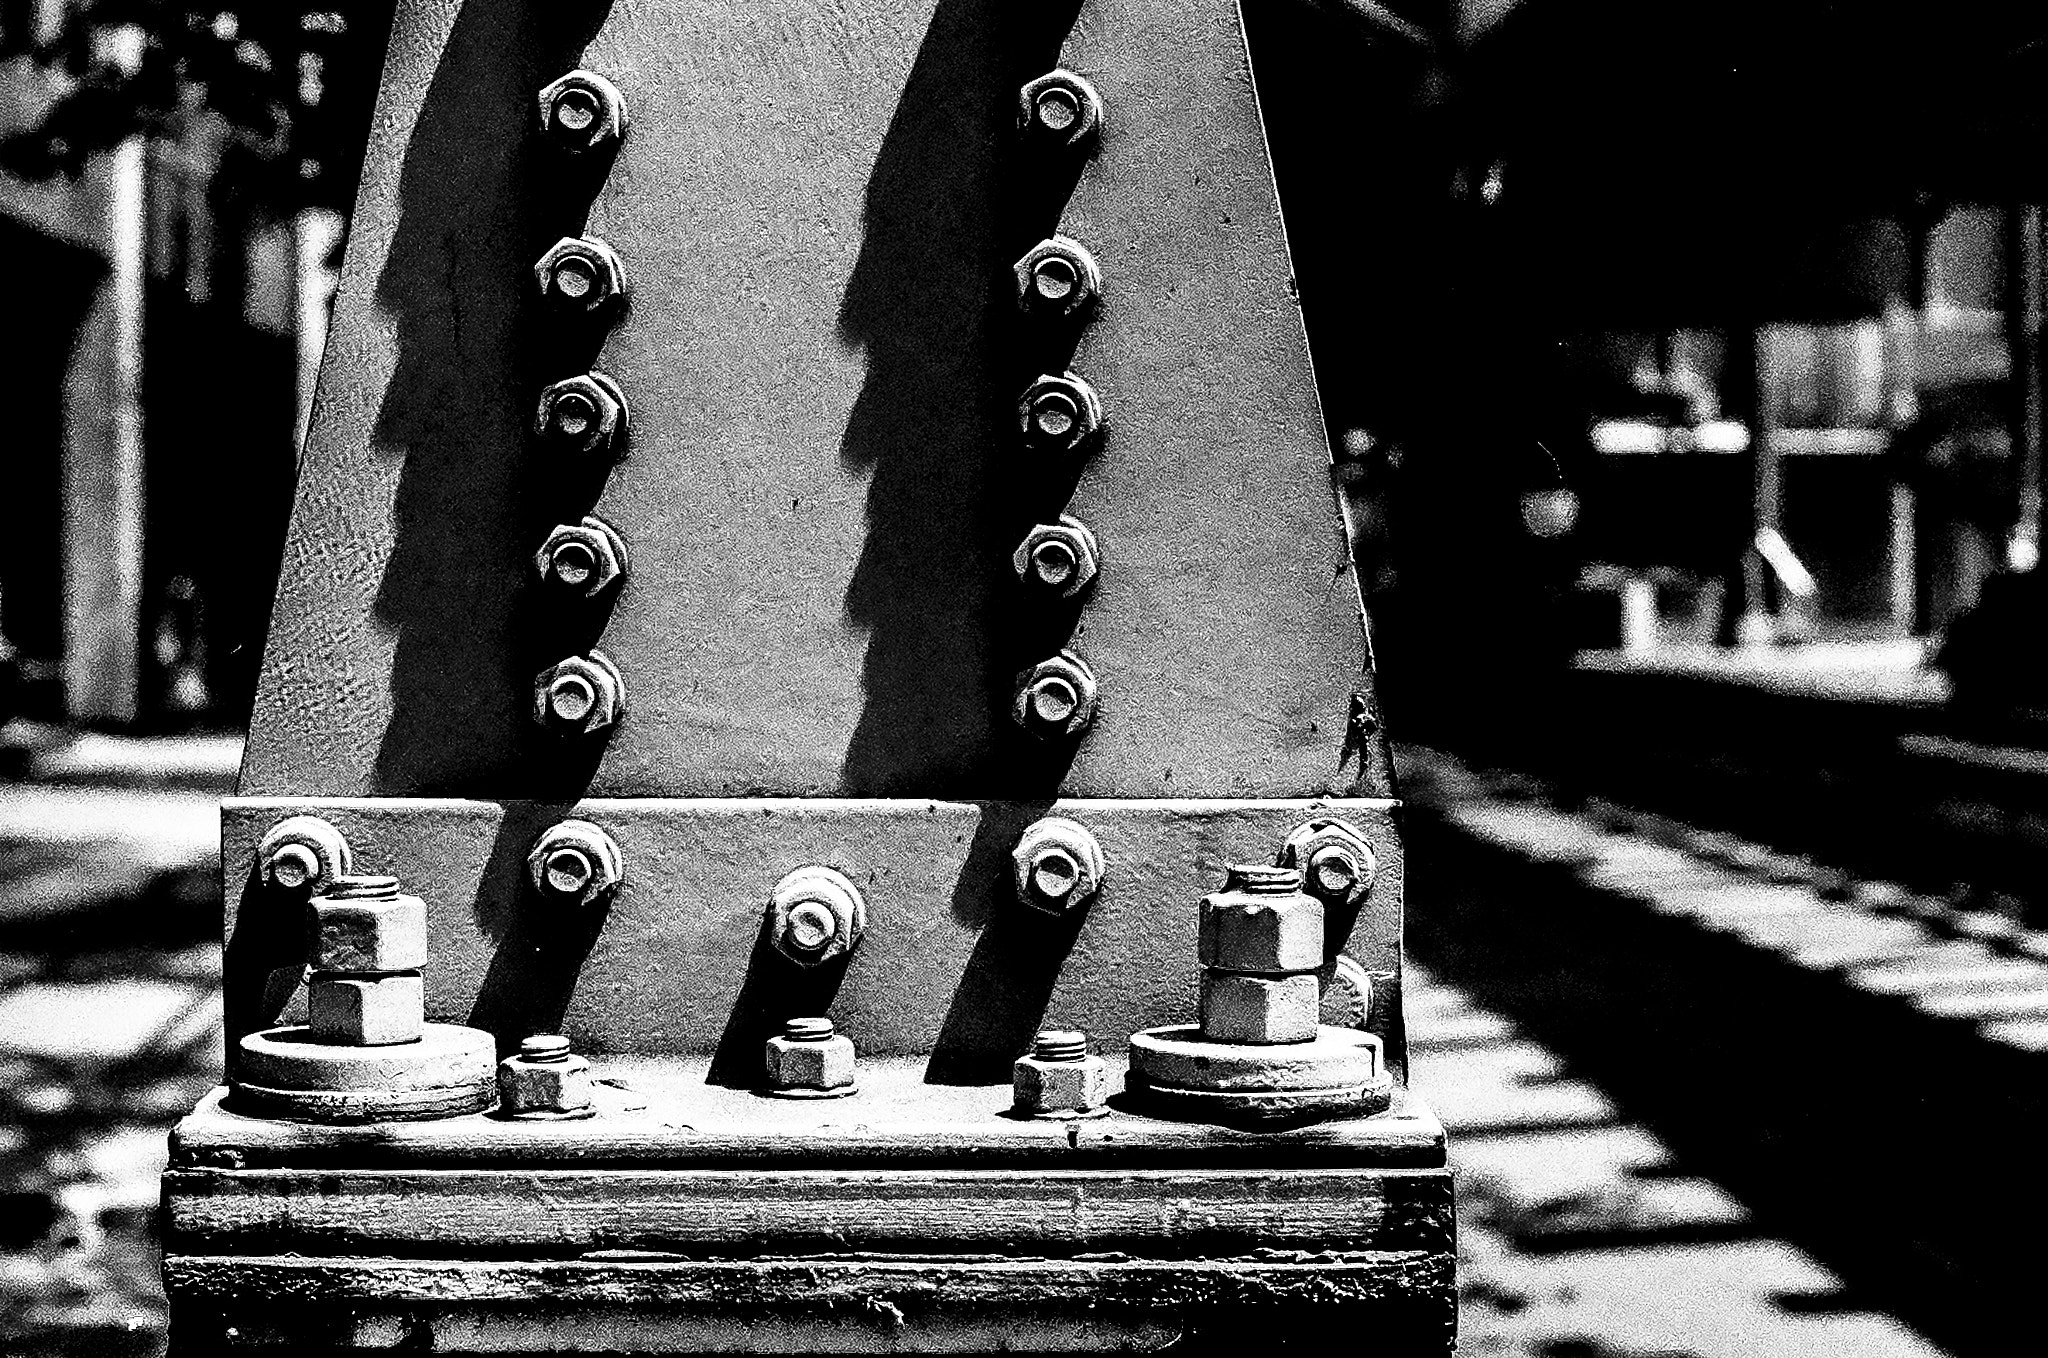 Photograph Parallel Nuts v2 by PJ Resnick on 500px